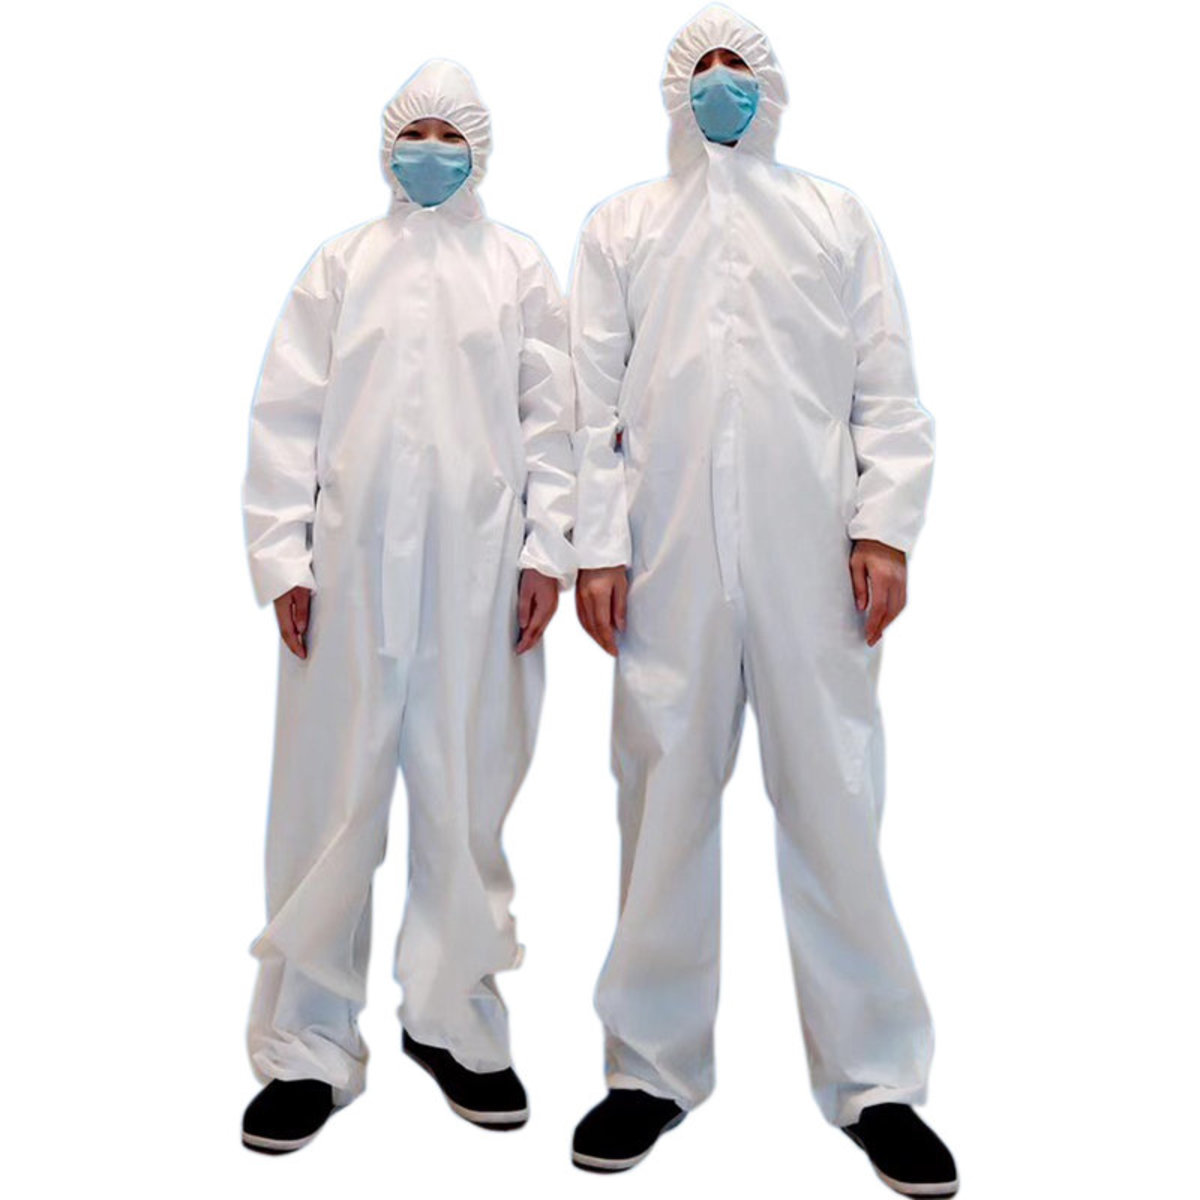 XL Size Disposable Isolation Gowns - White